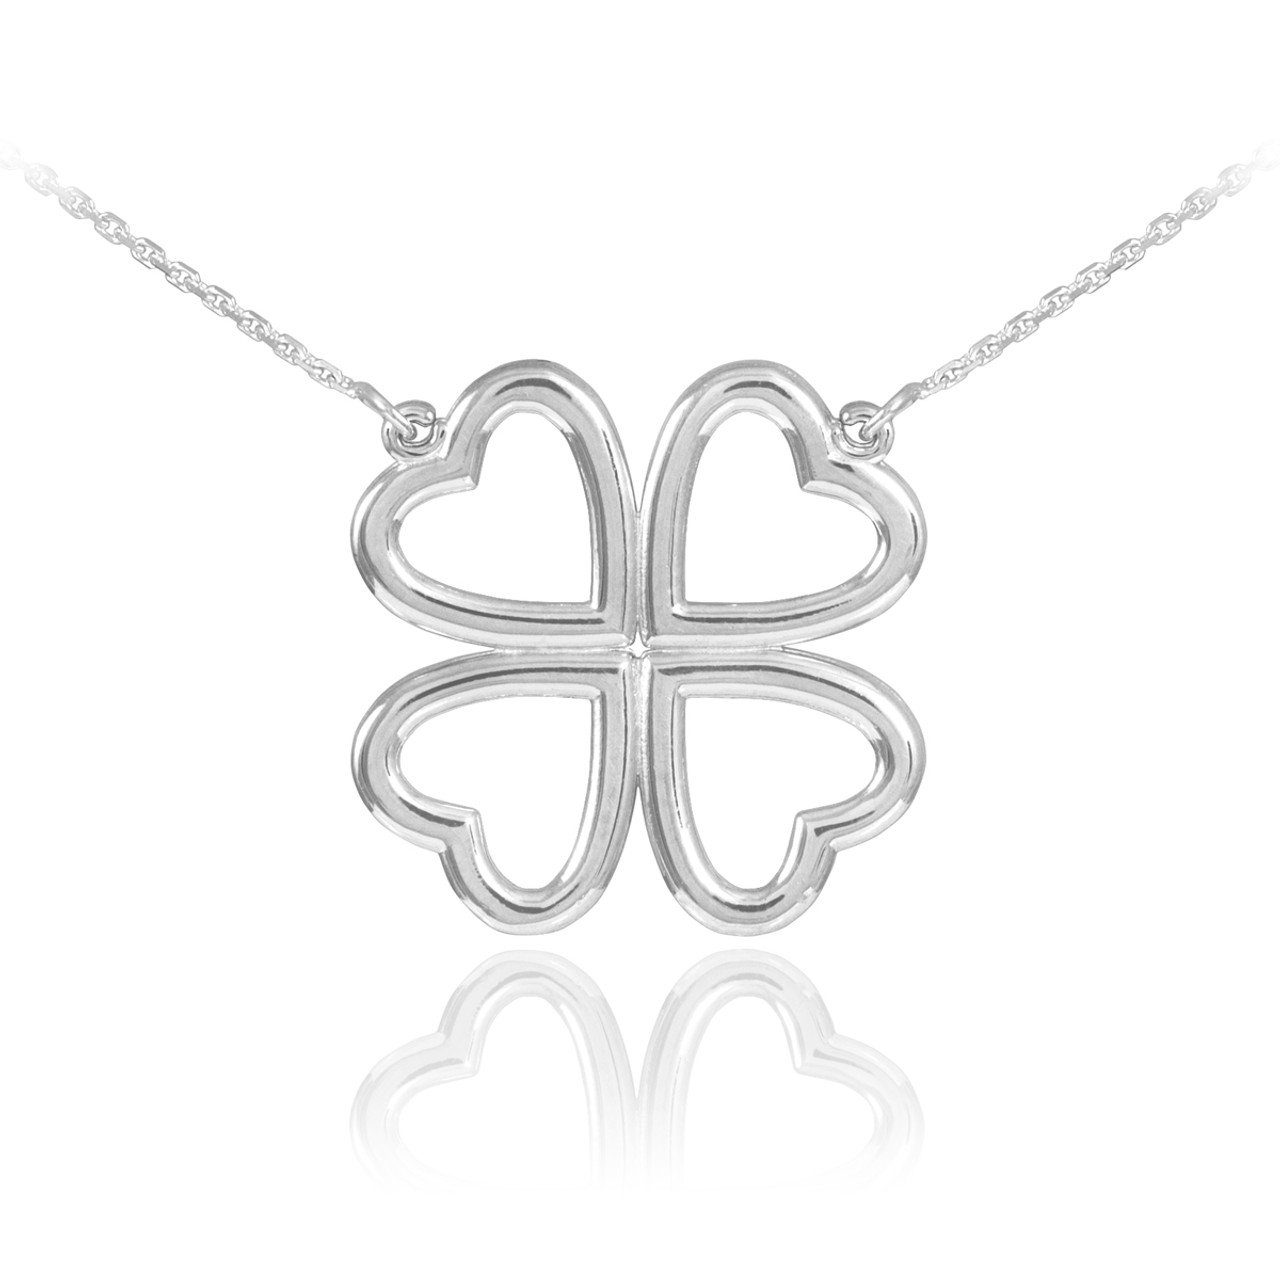 necklace jewelry pfs cz sterling shamrock bling leaf lucky az clover silver four